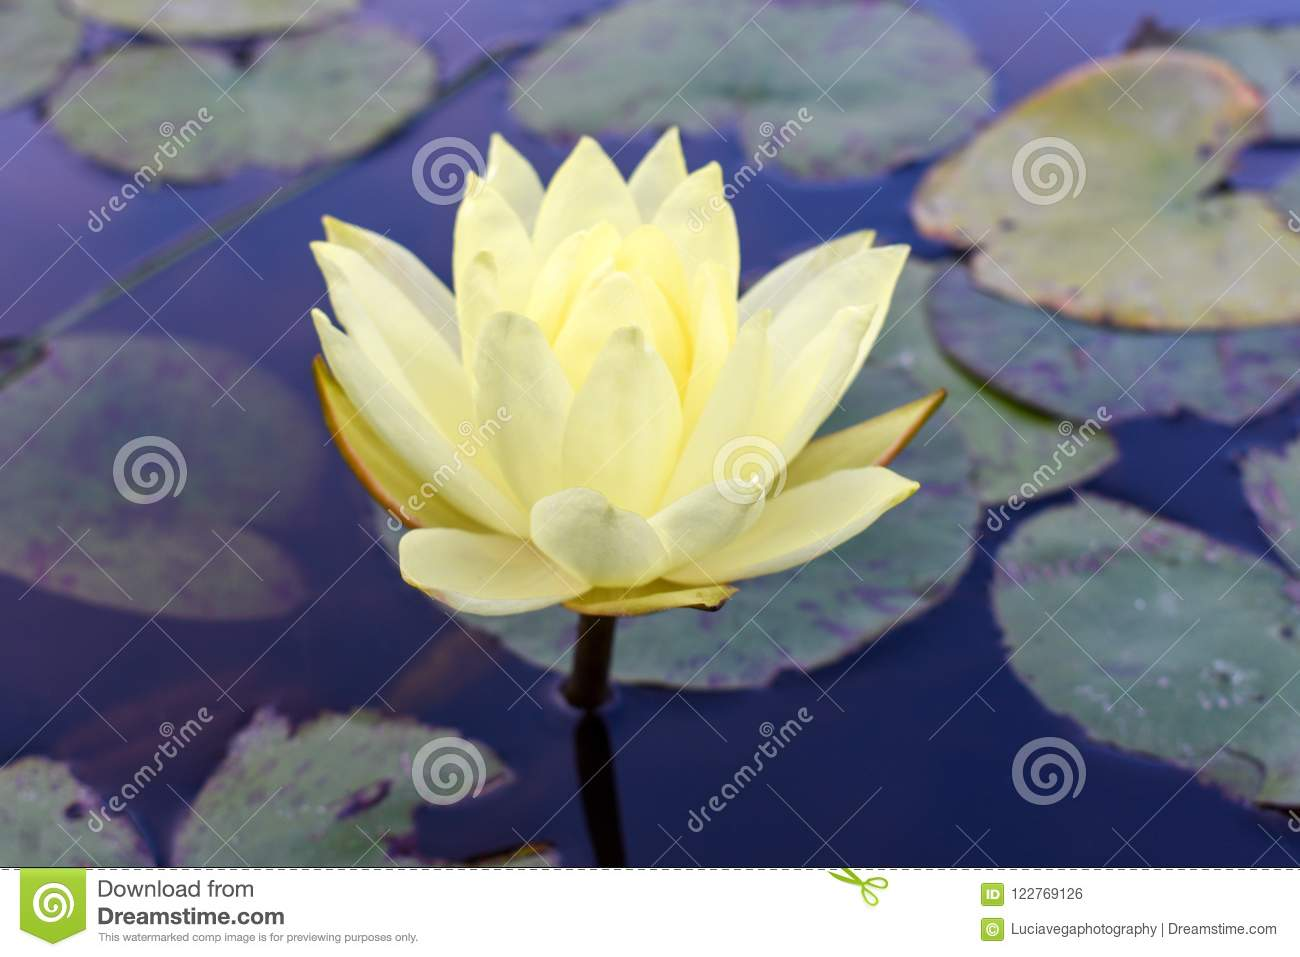 Perfect lotus flower and its leaves stock photo image of flower download perfect lotus flower and its leaves stock photo image of flower outdoors izmirmasajfo